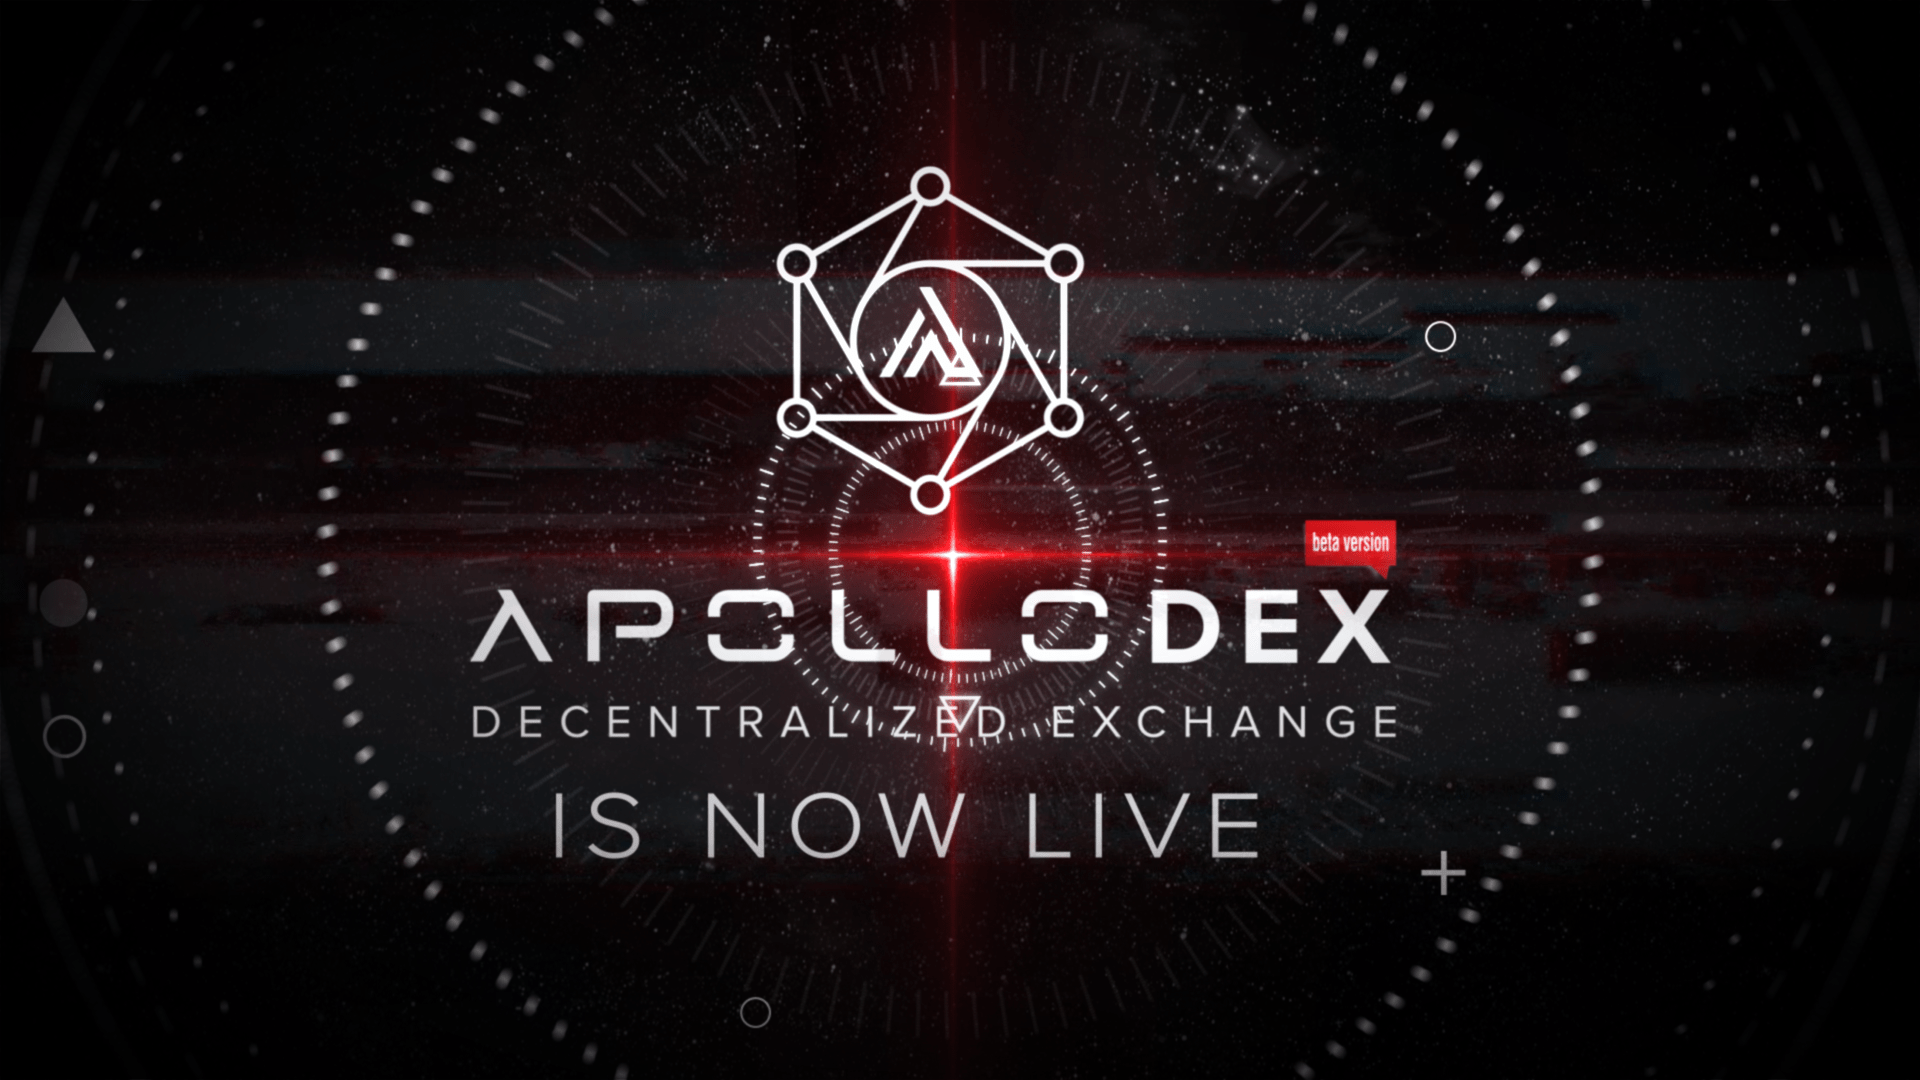 Apollo Foundation Launches Decentralized Exchange With Atomic Swaps